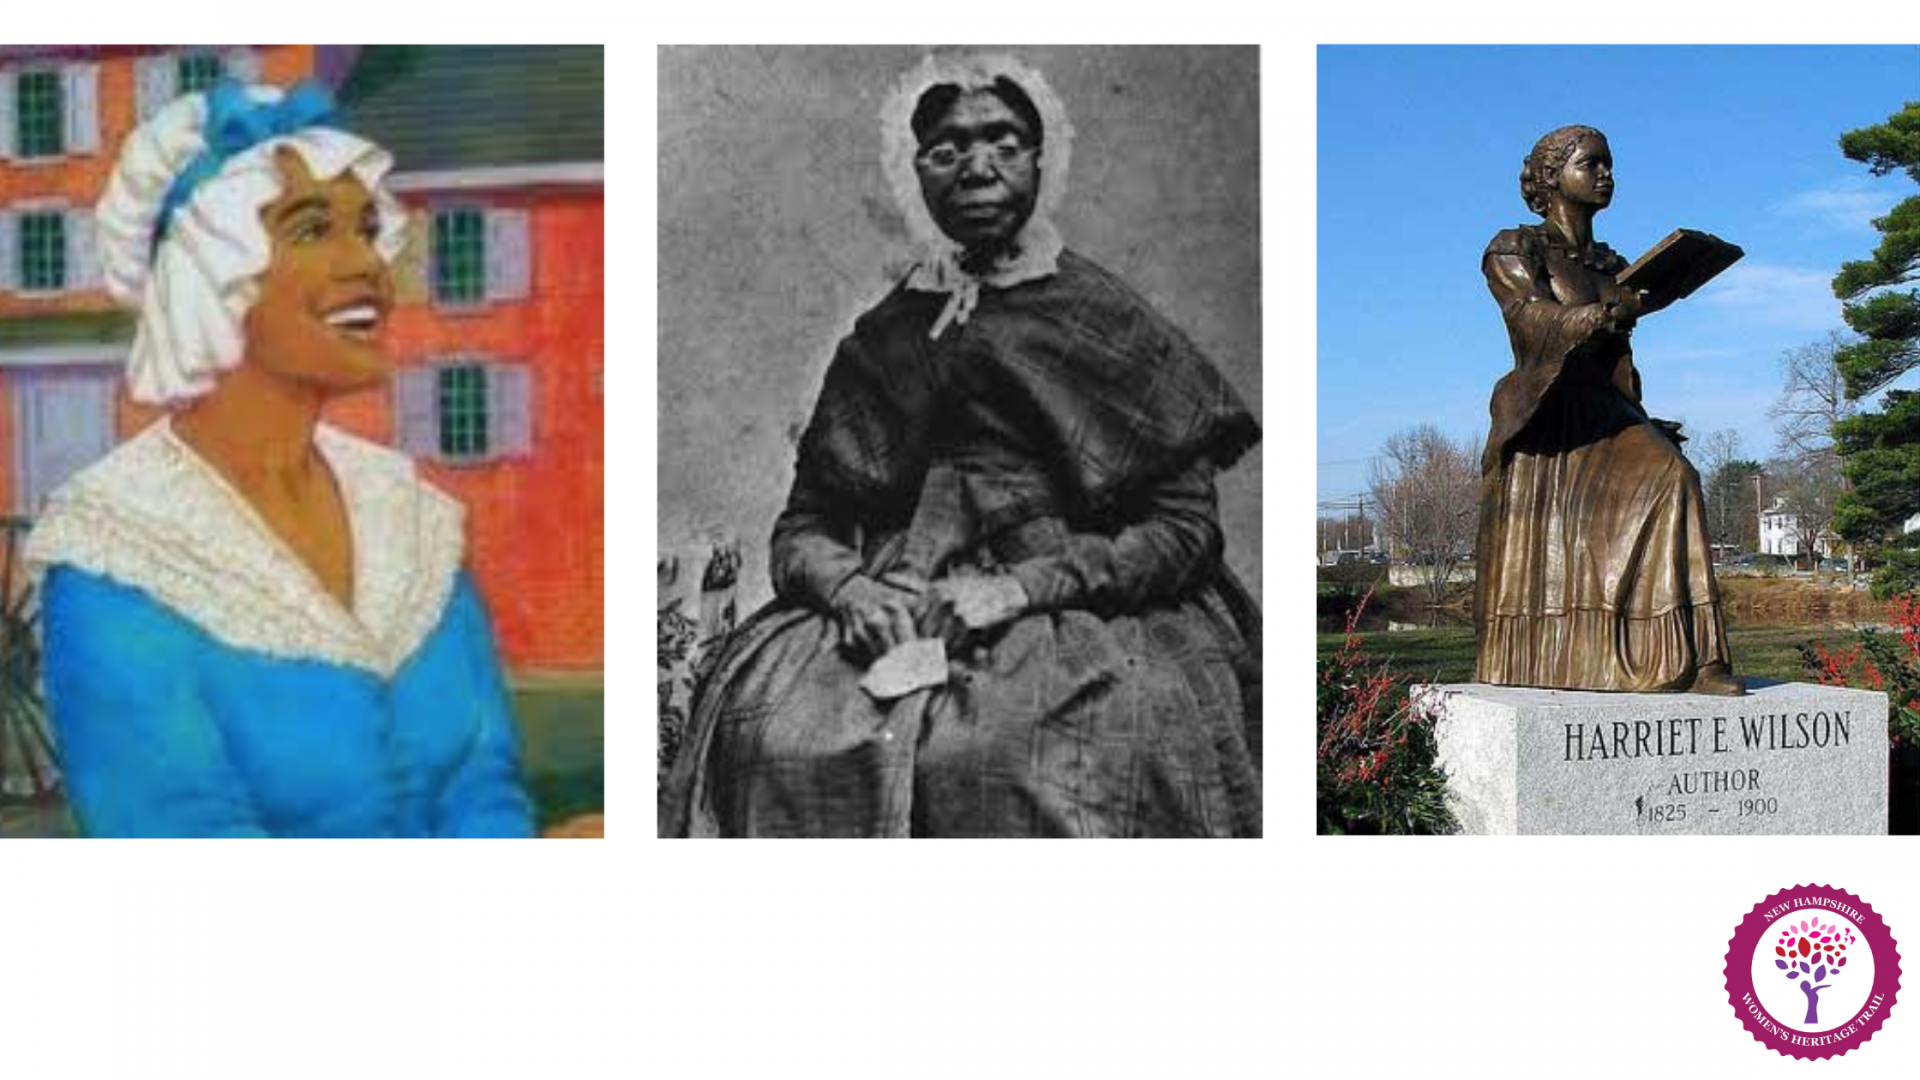 Black History Month & The New Hampshire Women's Heritage Trail